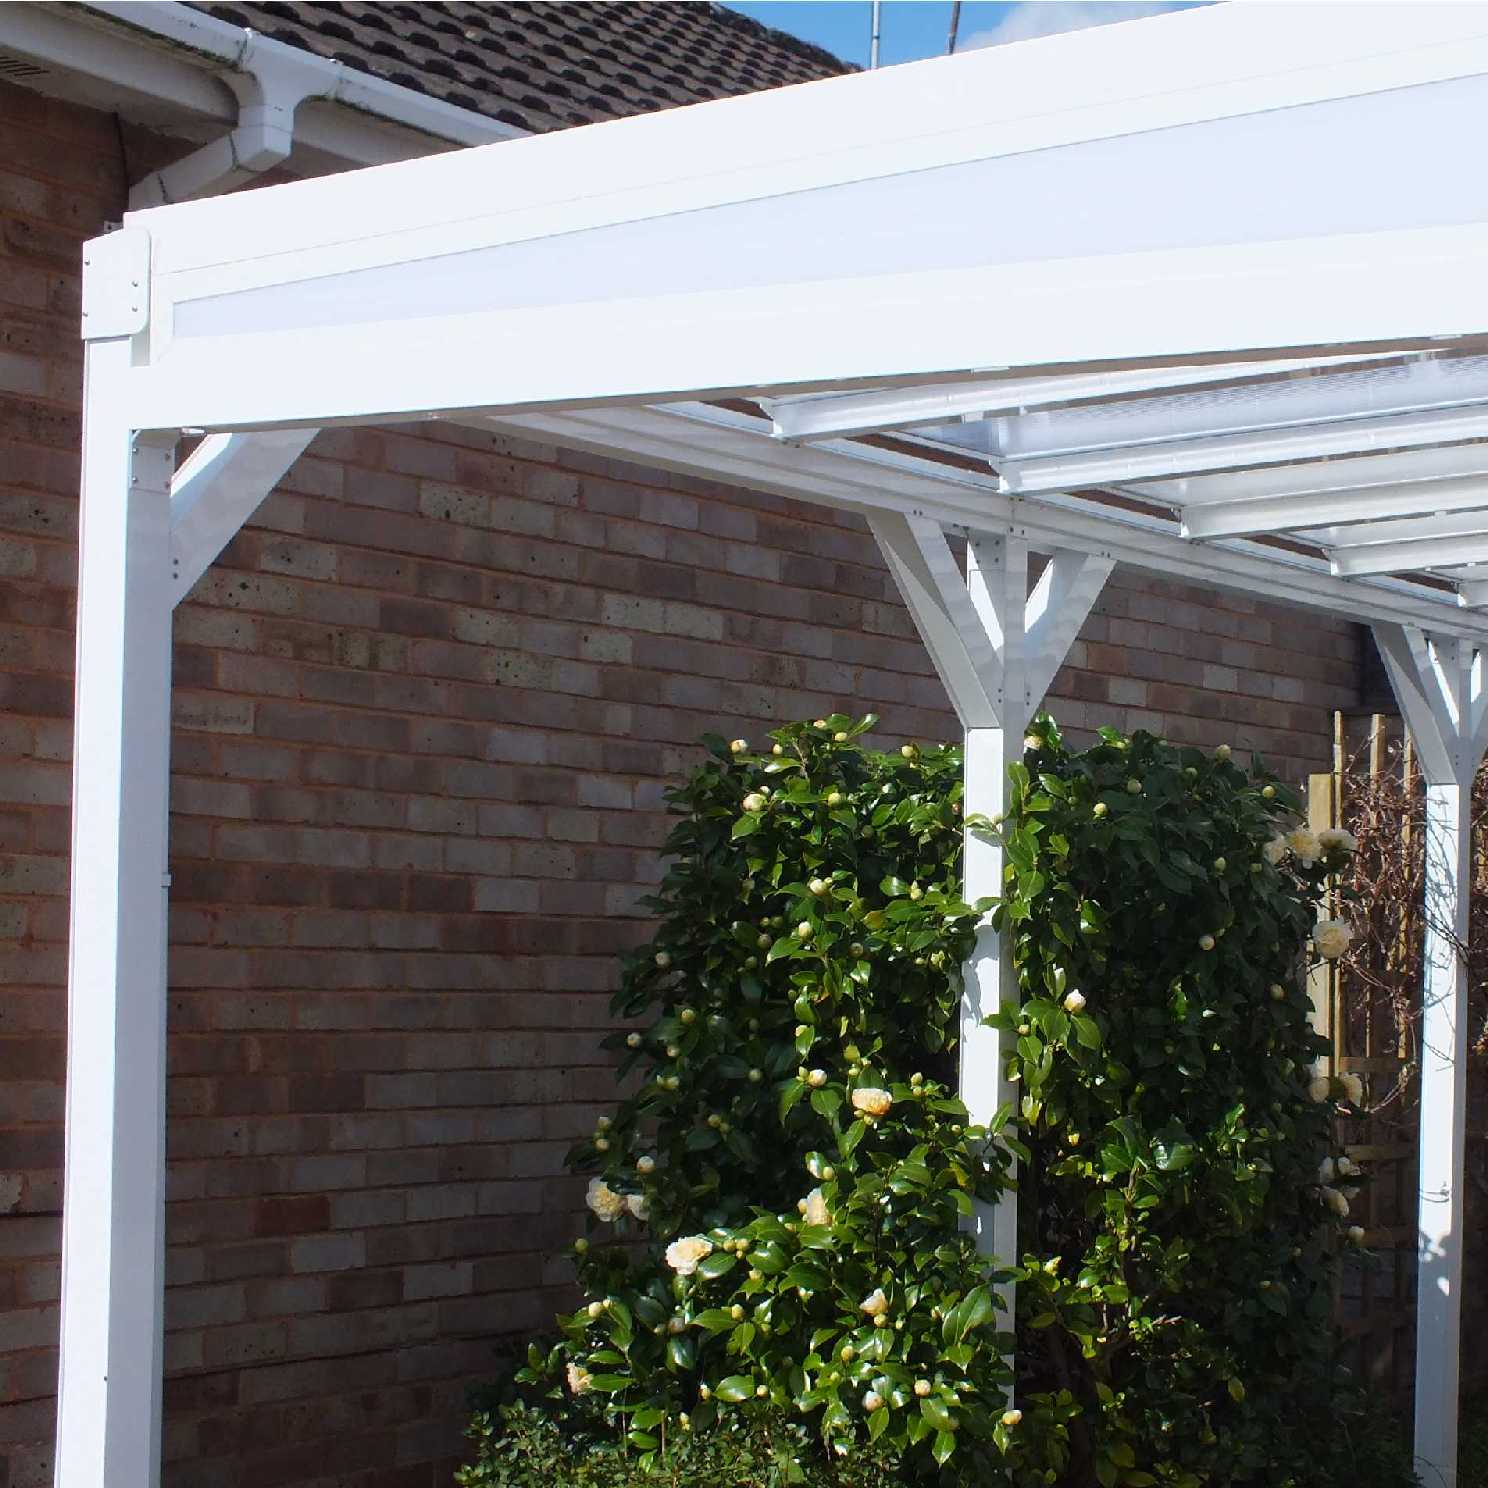 Omega Smart White Lean-To Canopy with 16mm Polycarbonate Glazing - 2.1m (W) x 1.5m (P), (2) Supporting Posts from Omega Build